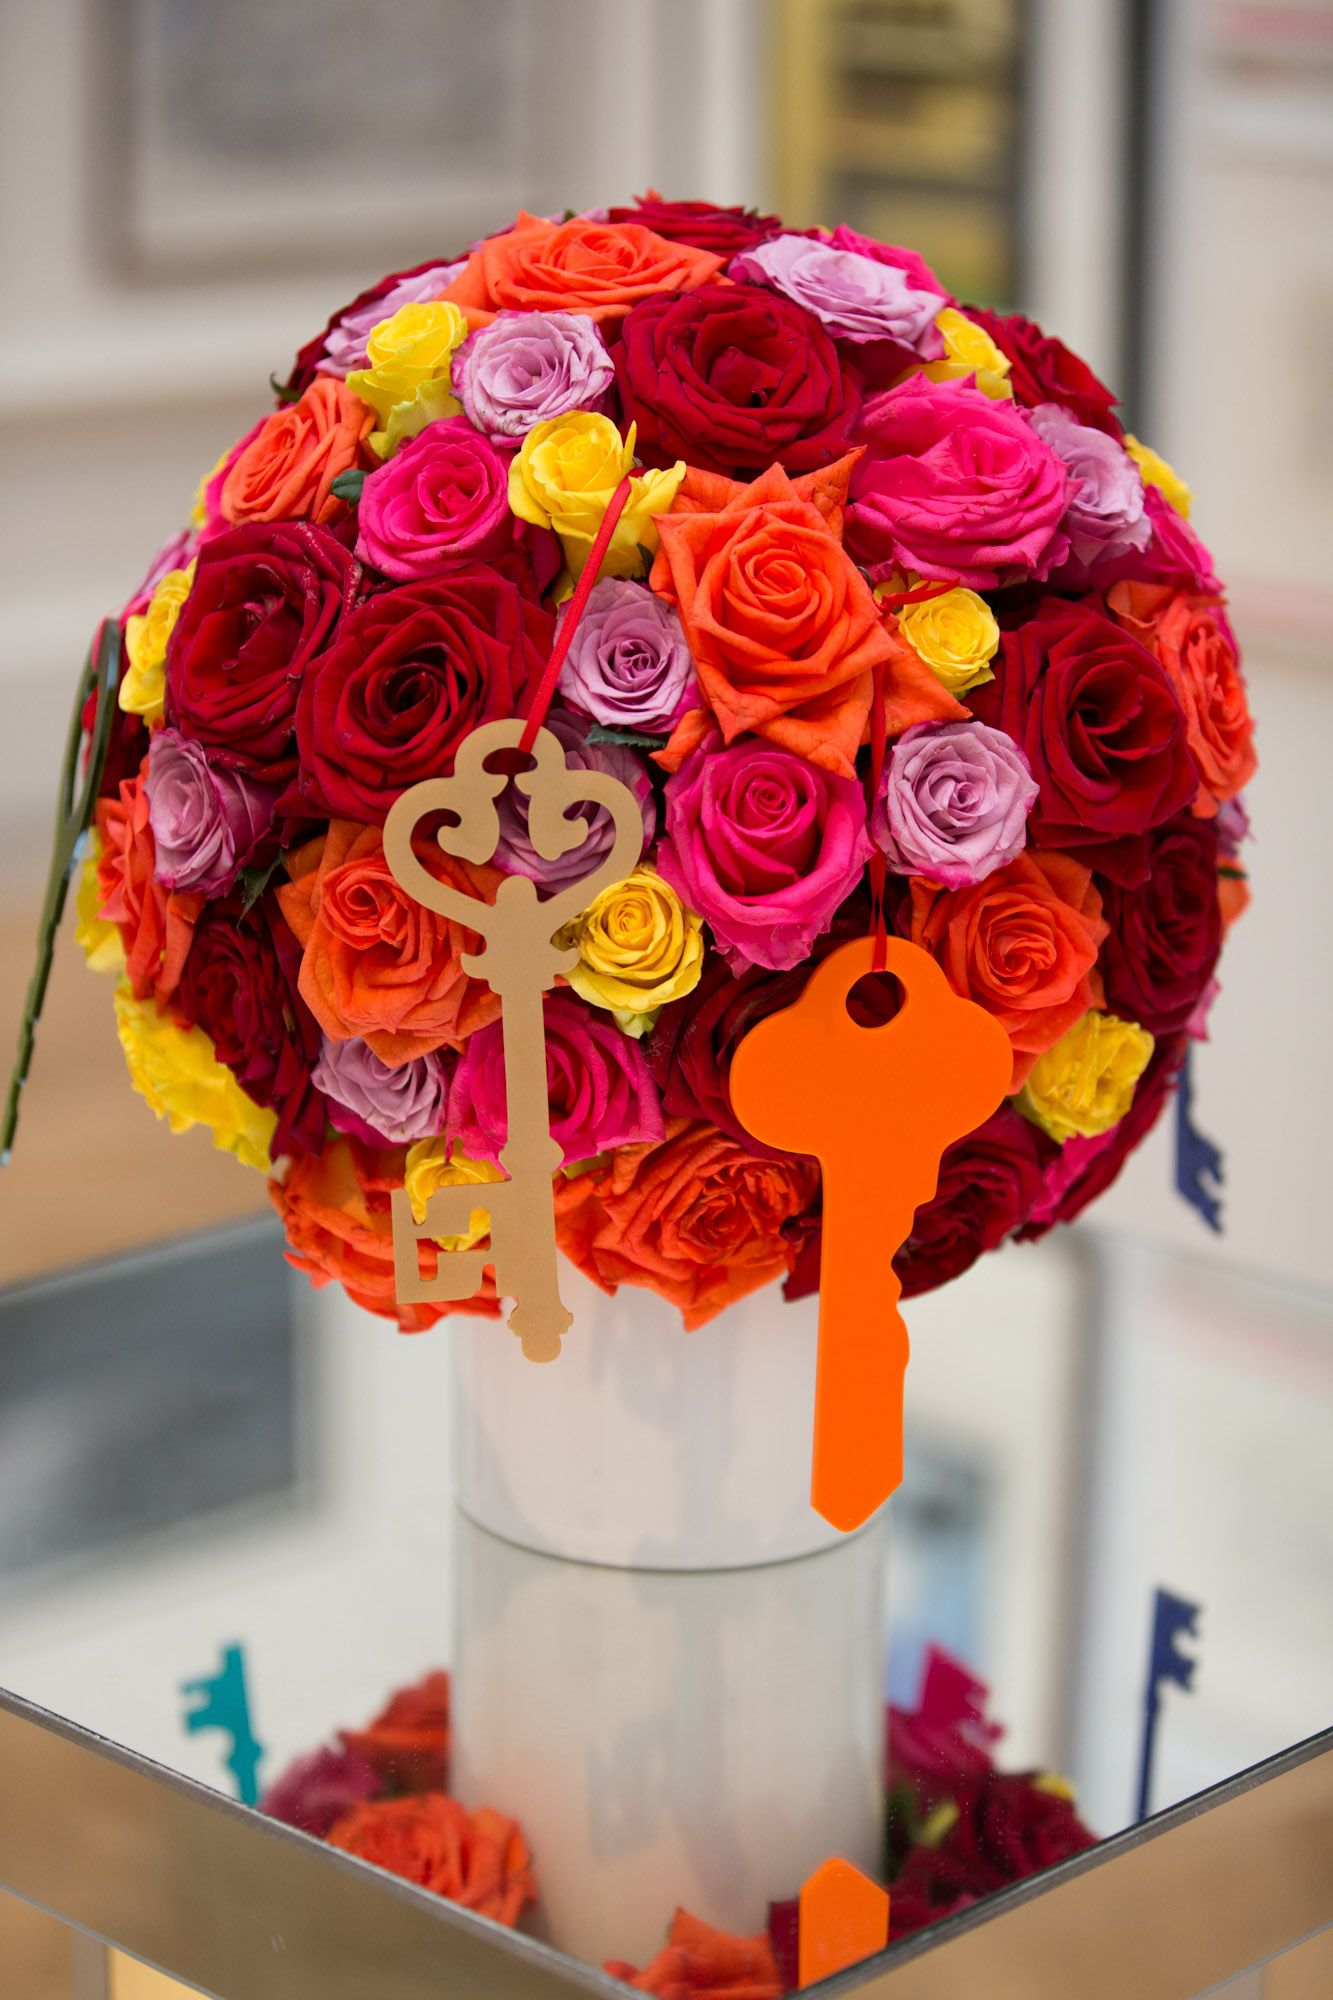 21st birthday flowers by simon j lycett flowers pinterest 21st birthday flowers for unique venues of london using roses and their key logo izmirmasajfo